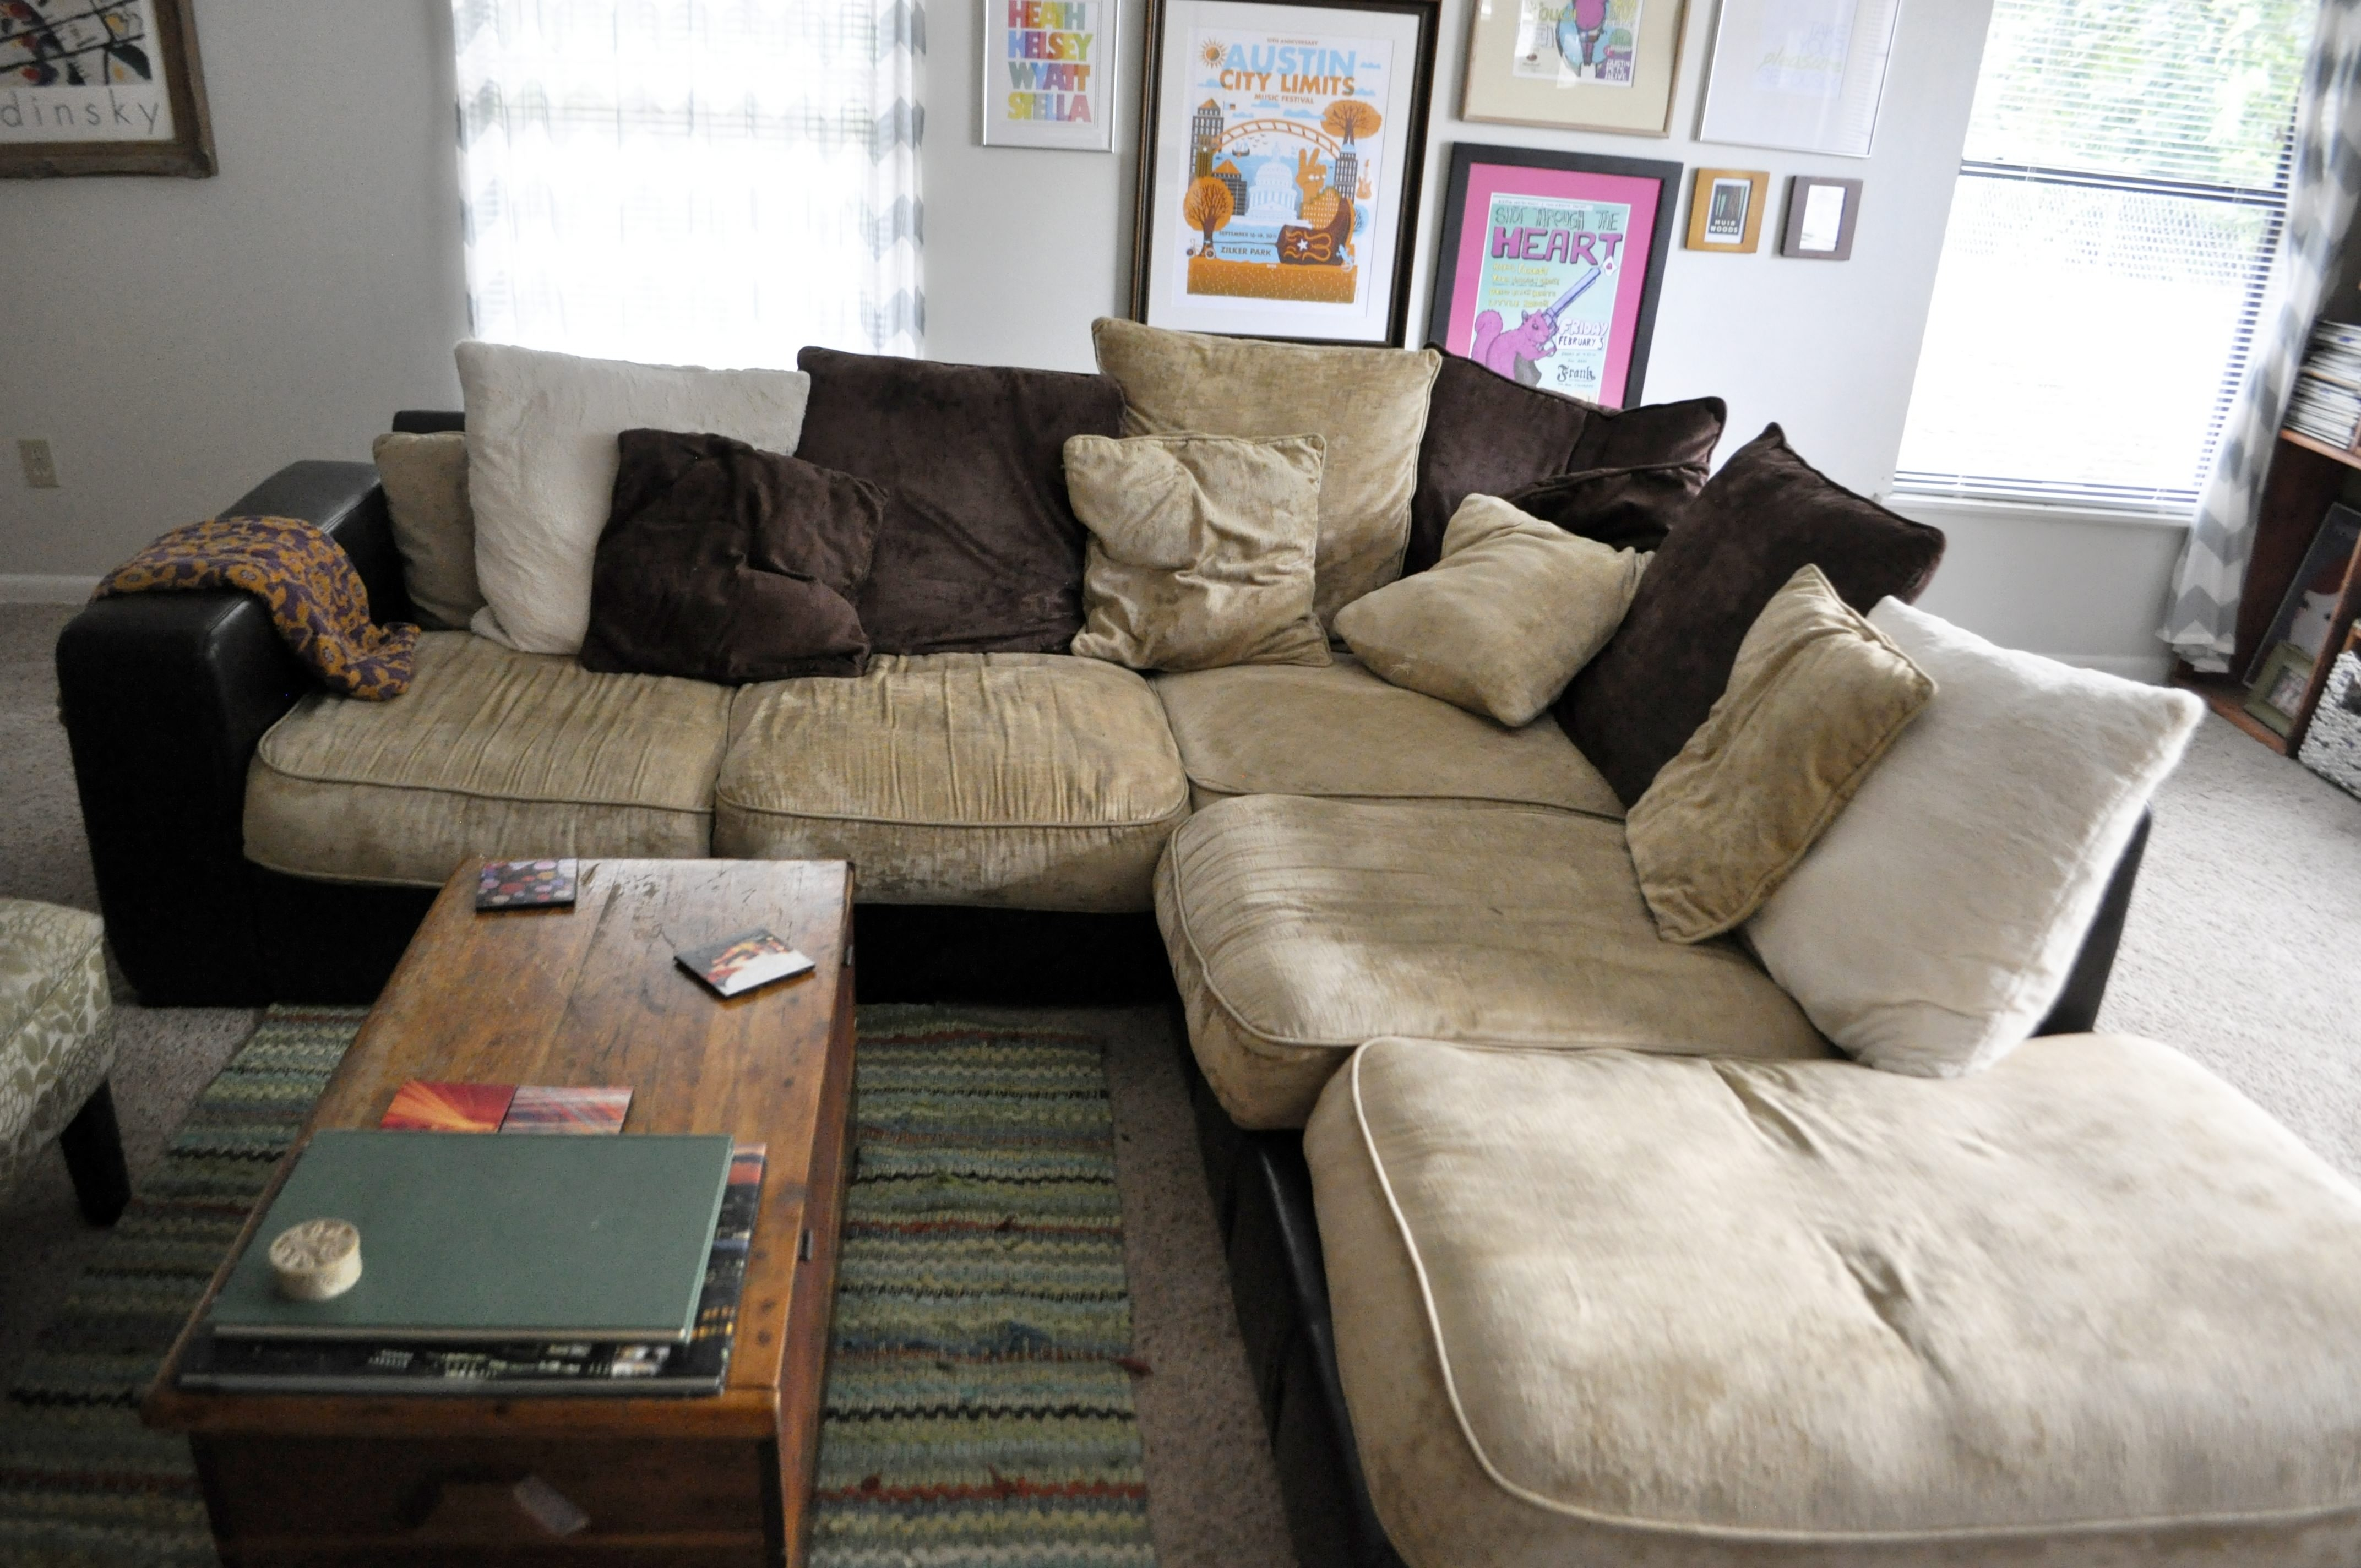 Picture Of Comfortable Sectional Sofa On Home Remodel Ideas Jk22 In Comfy Sectional Sofa (Image 14 of 15)